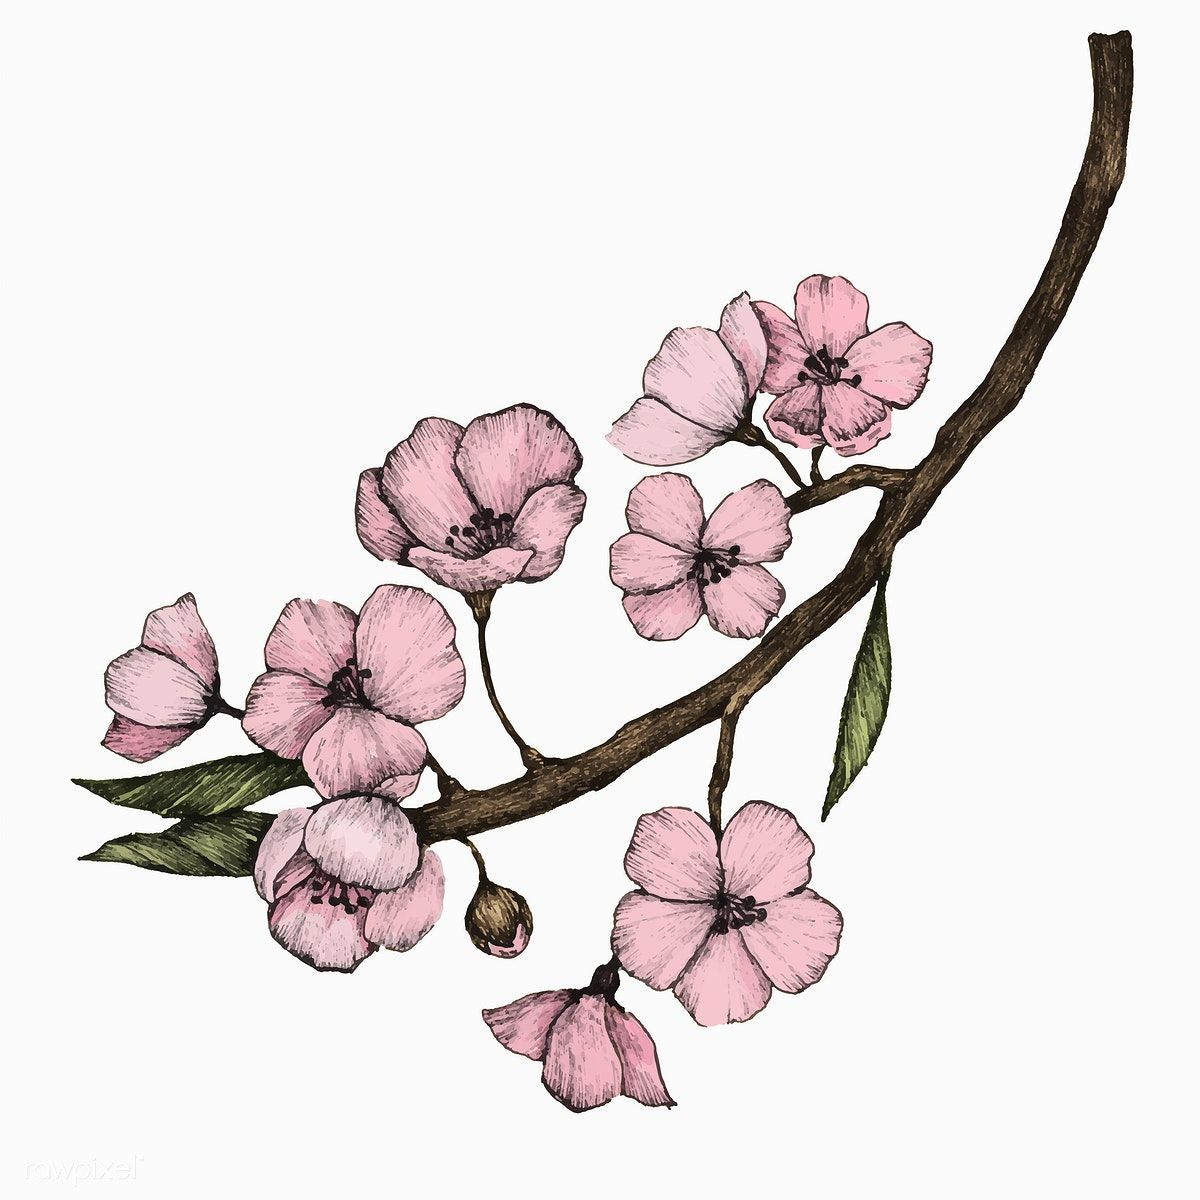 Download premium vector of Illustration of Cherry Blossom